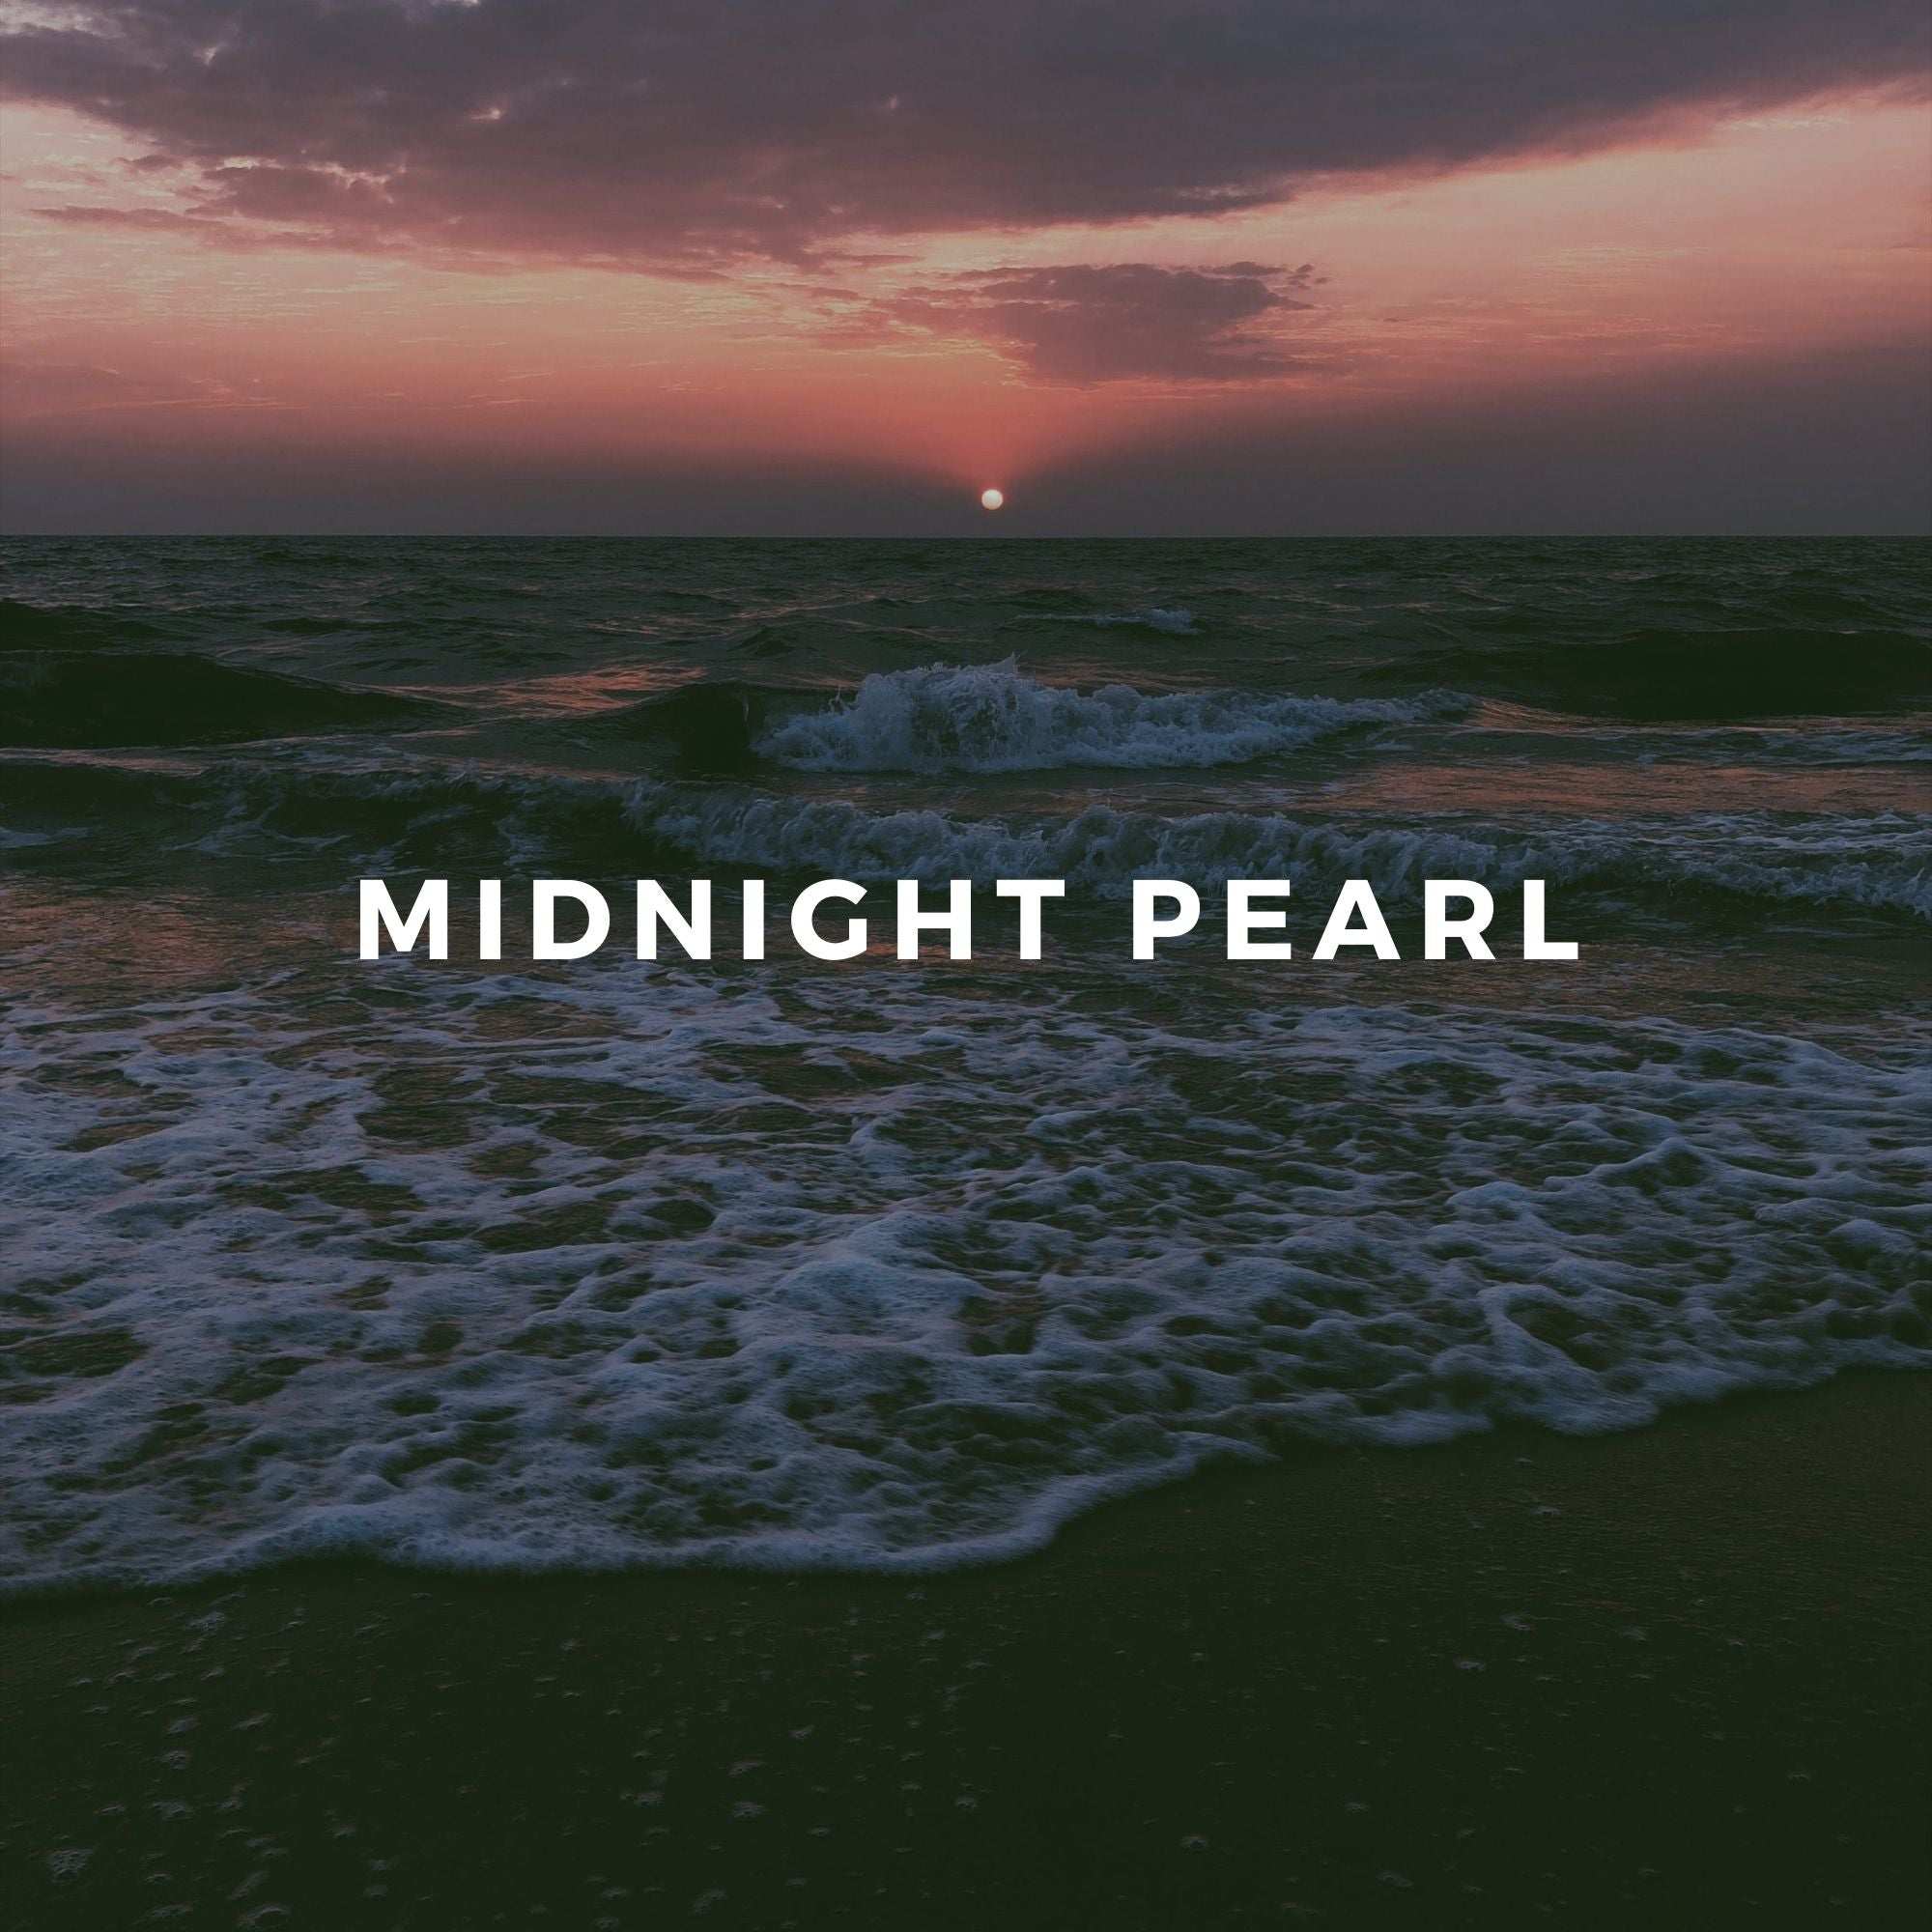 Raw Spirit Midnight Pearl perfume is inspired by evenings on the tropical shores of Bali, when the warm air is filled with the intoxicating scent of blooming petals and burning incense, as the moon illuminates the South Seas.